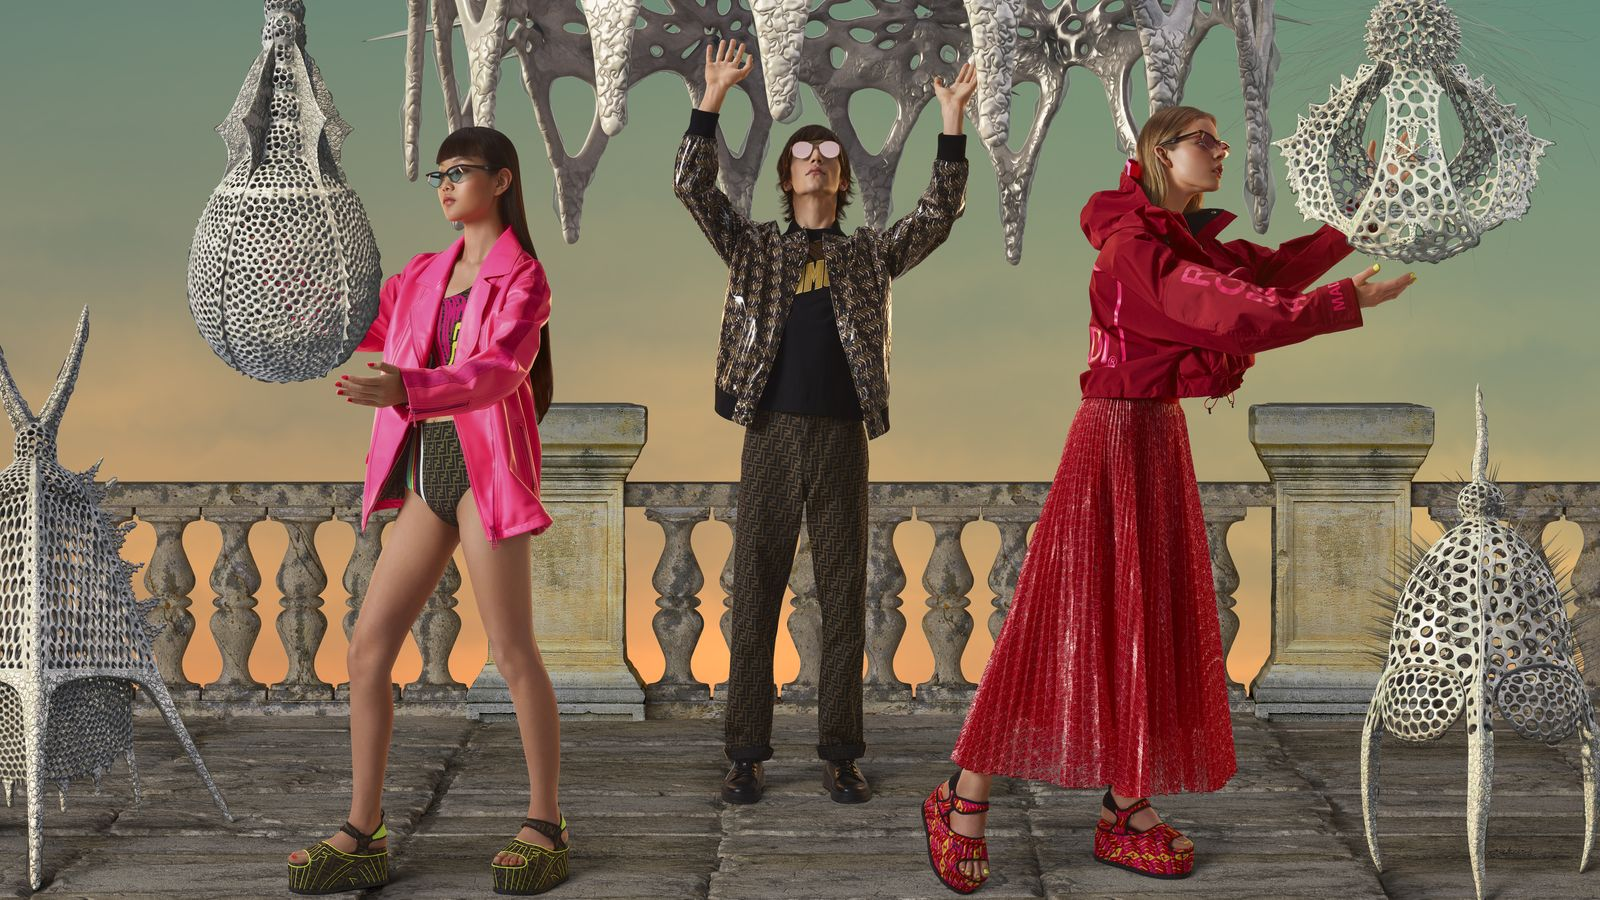 69535da339d8 The results? The aptly titled Gentle Fendi capsule collection, which  combines Fendi's elegance with Gentle Monster's quirky (and often volatile)  aesthetics.